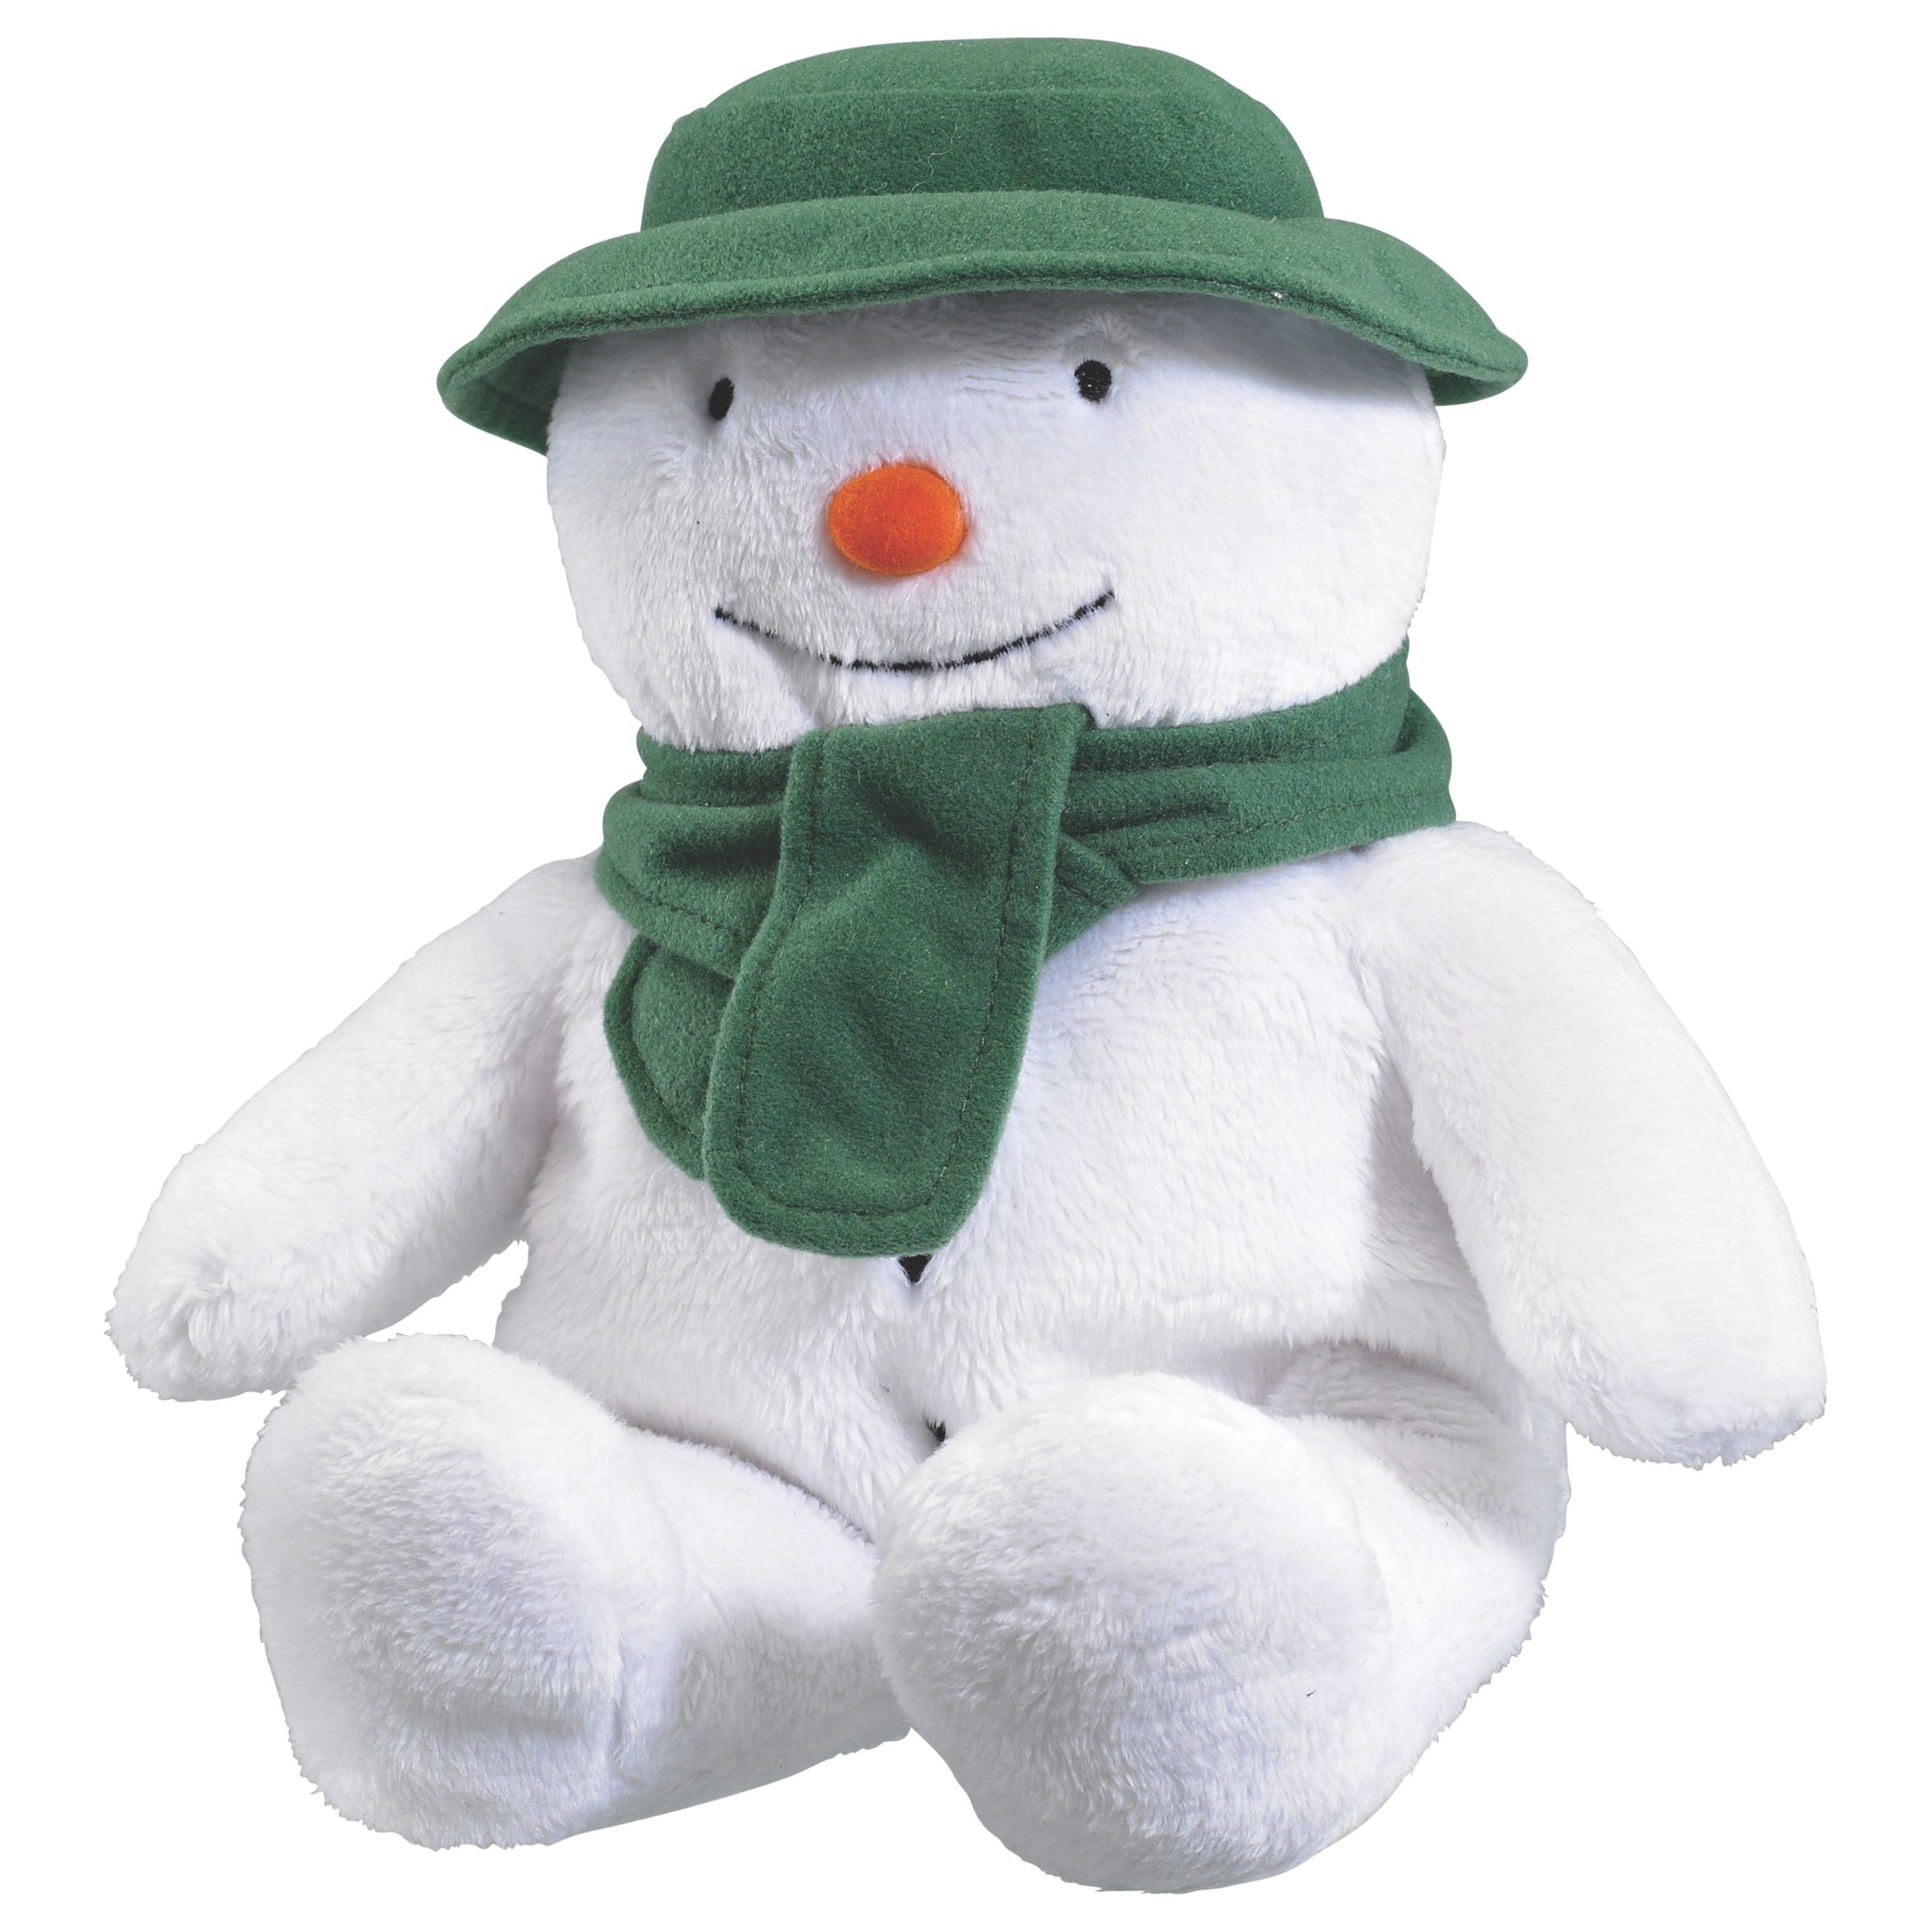 The Snowman The Snowman Cuddly Soft Toy